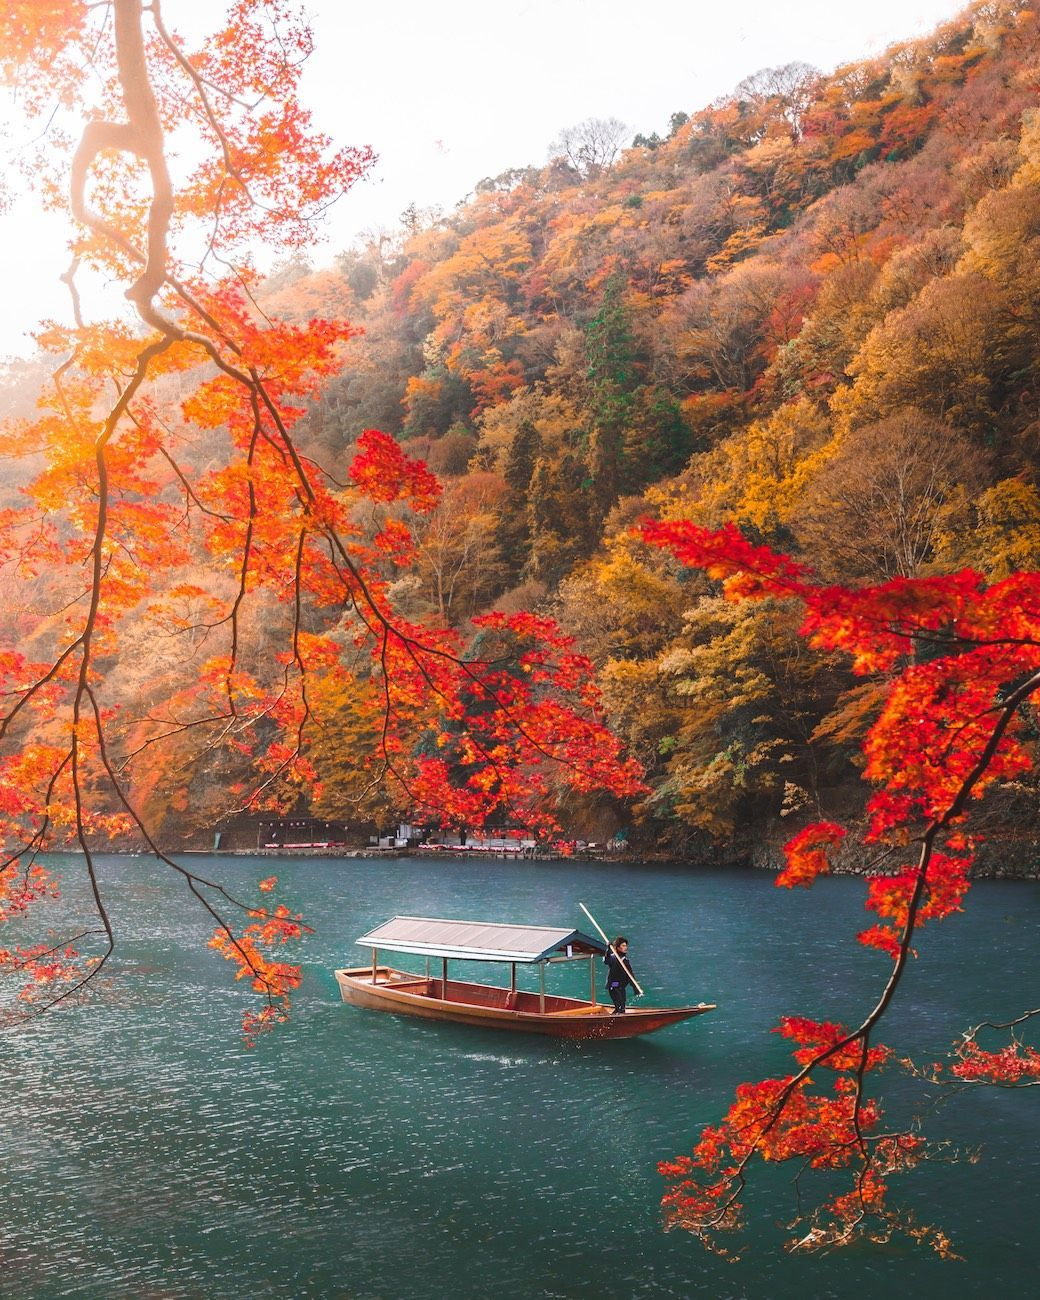 10 images that prove Japan is even more magical during